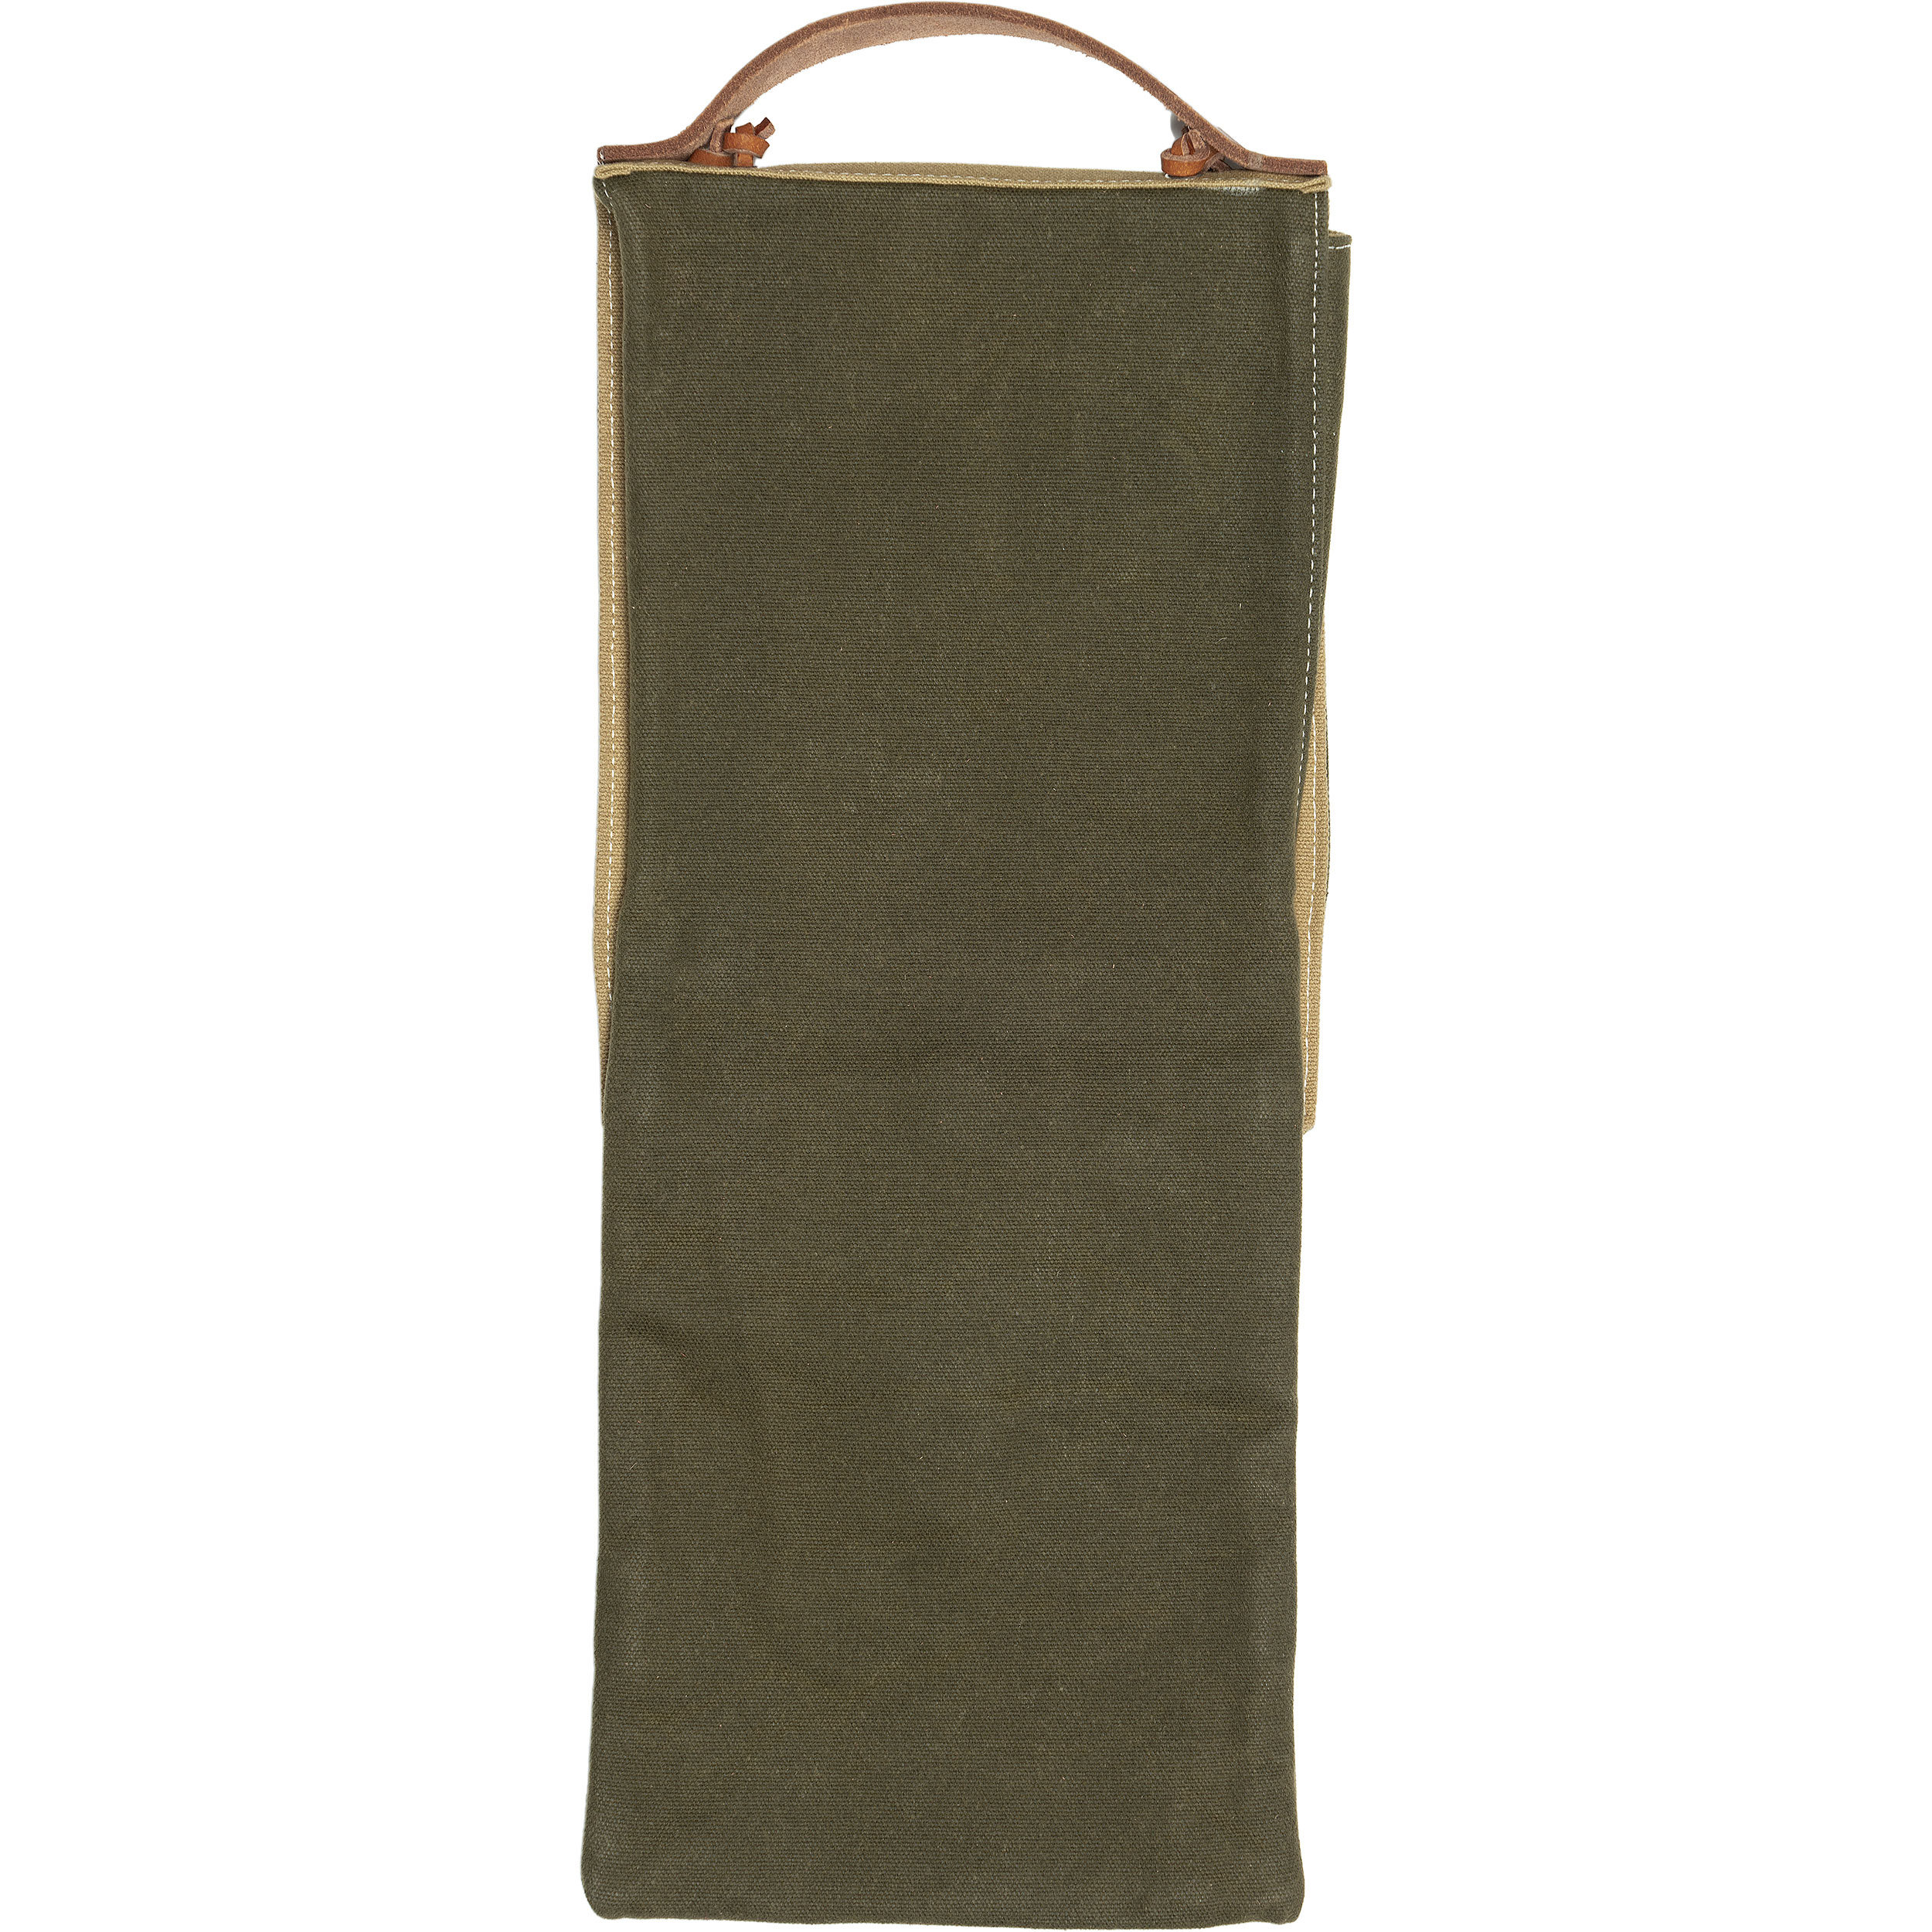 Stick bag the forest